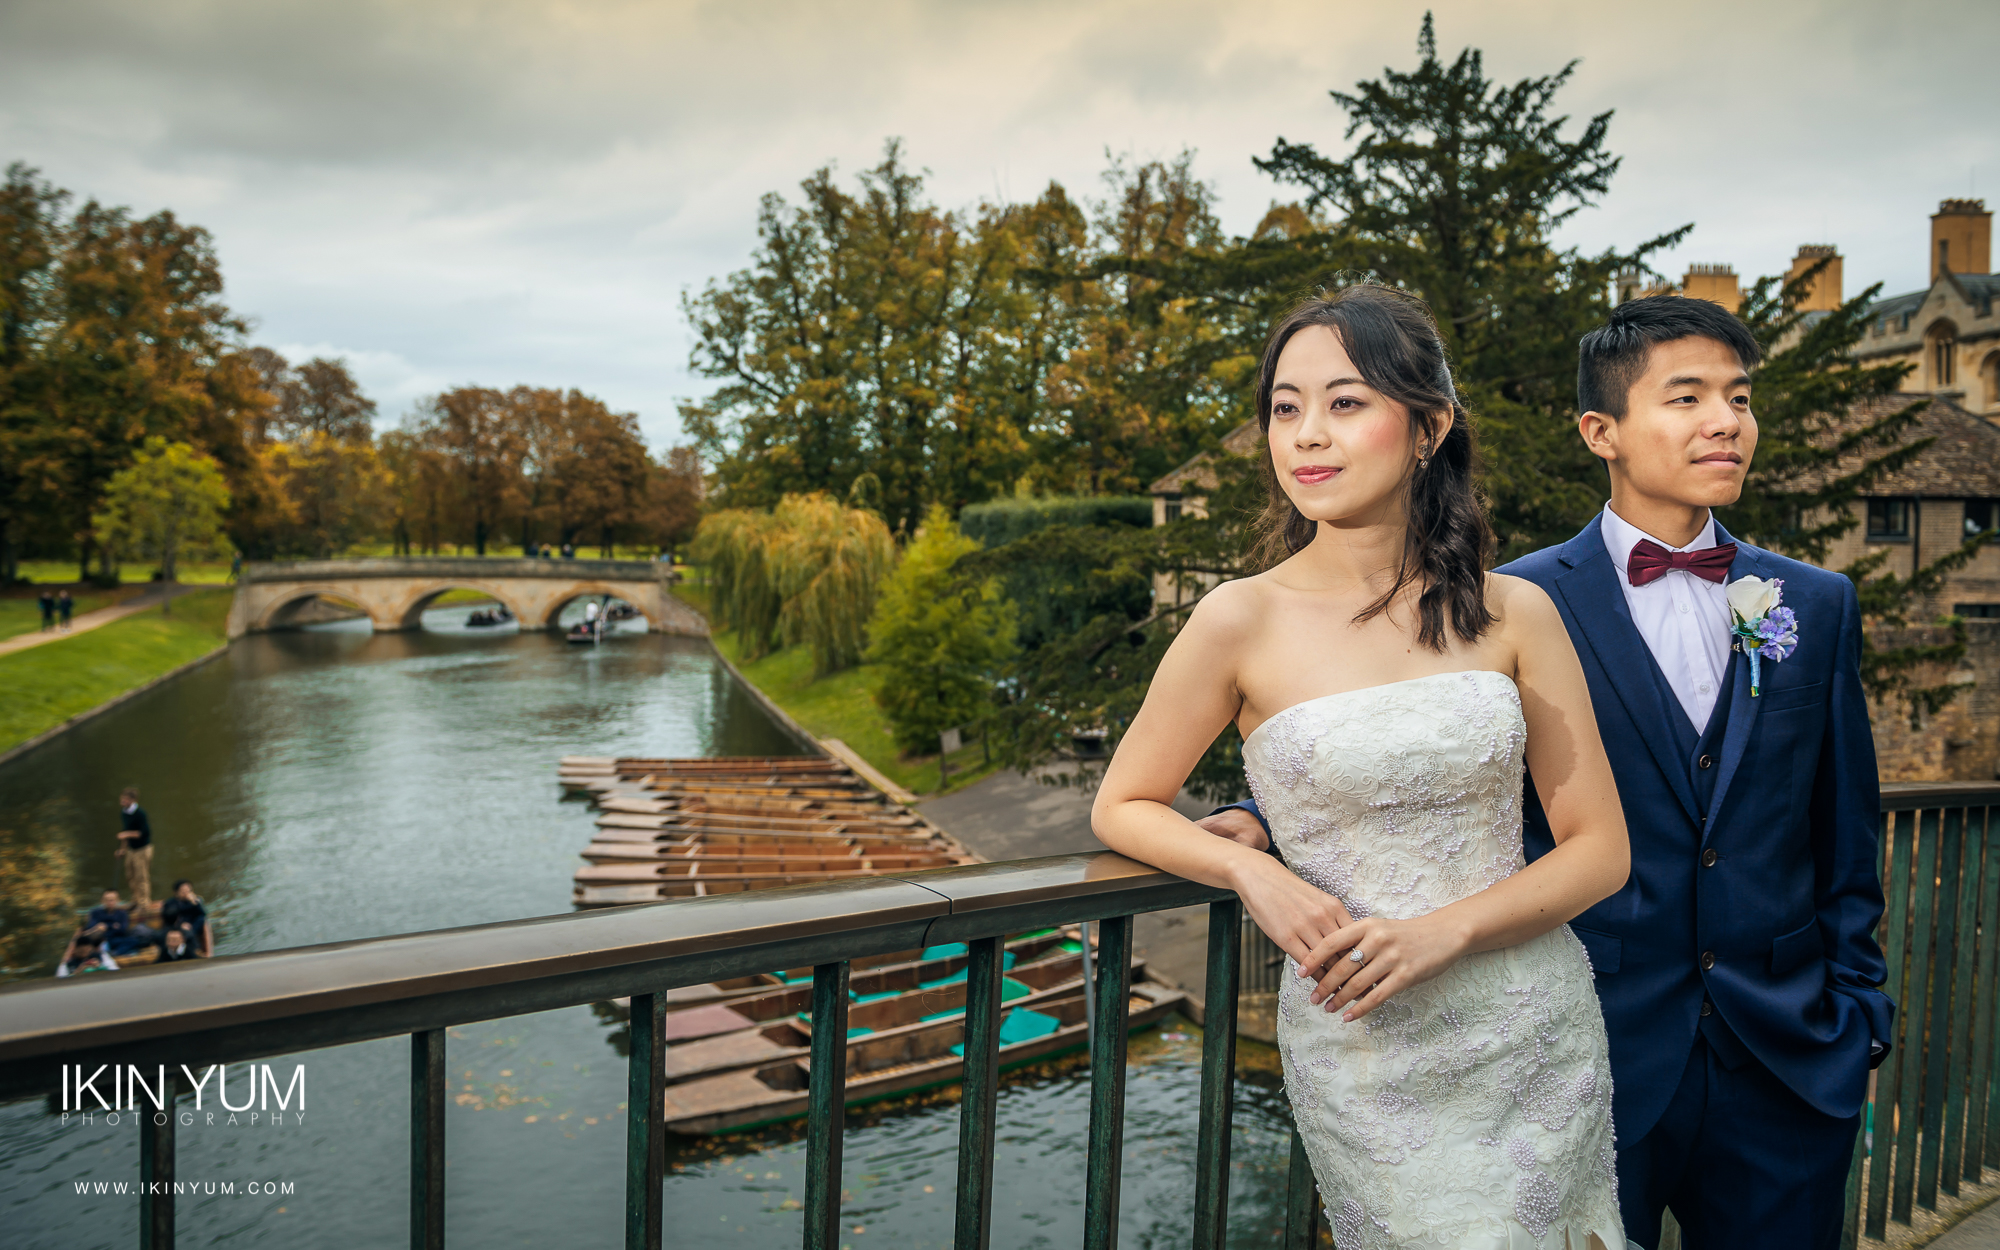 Chloe & Carlos Pre-Wedding Shoot- Ikin Yum Photography-0026.jpg